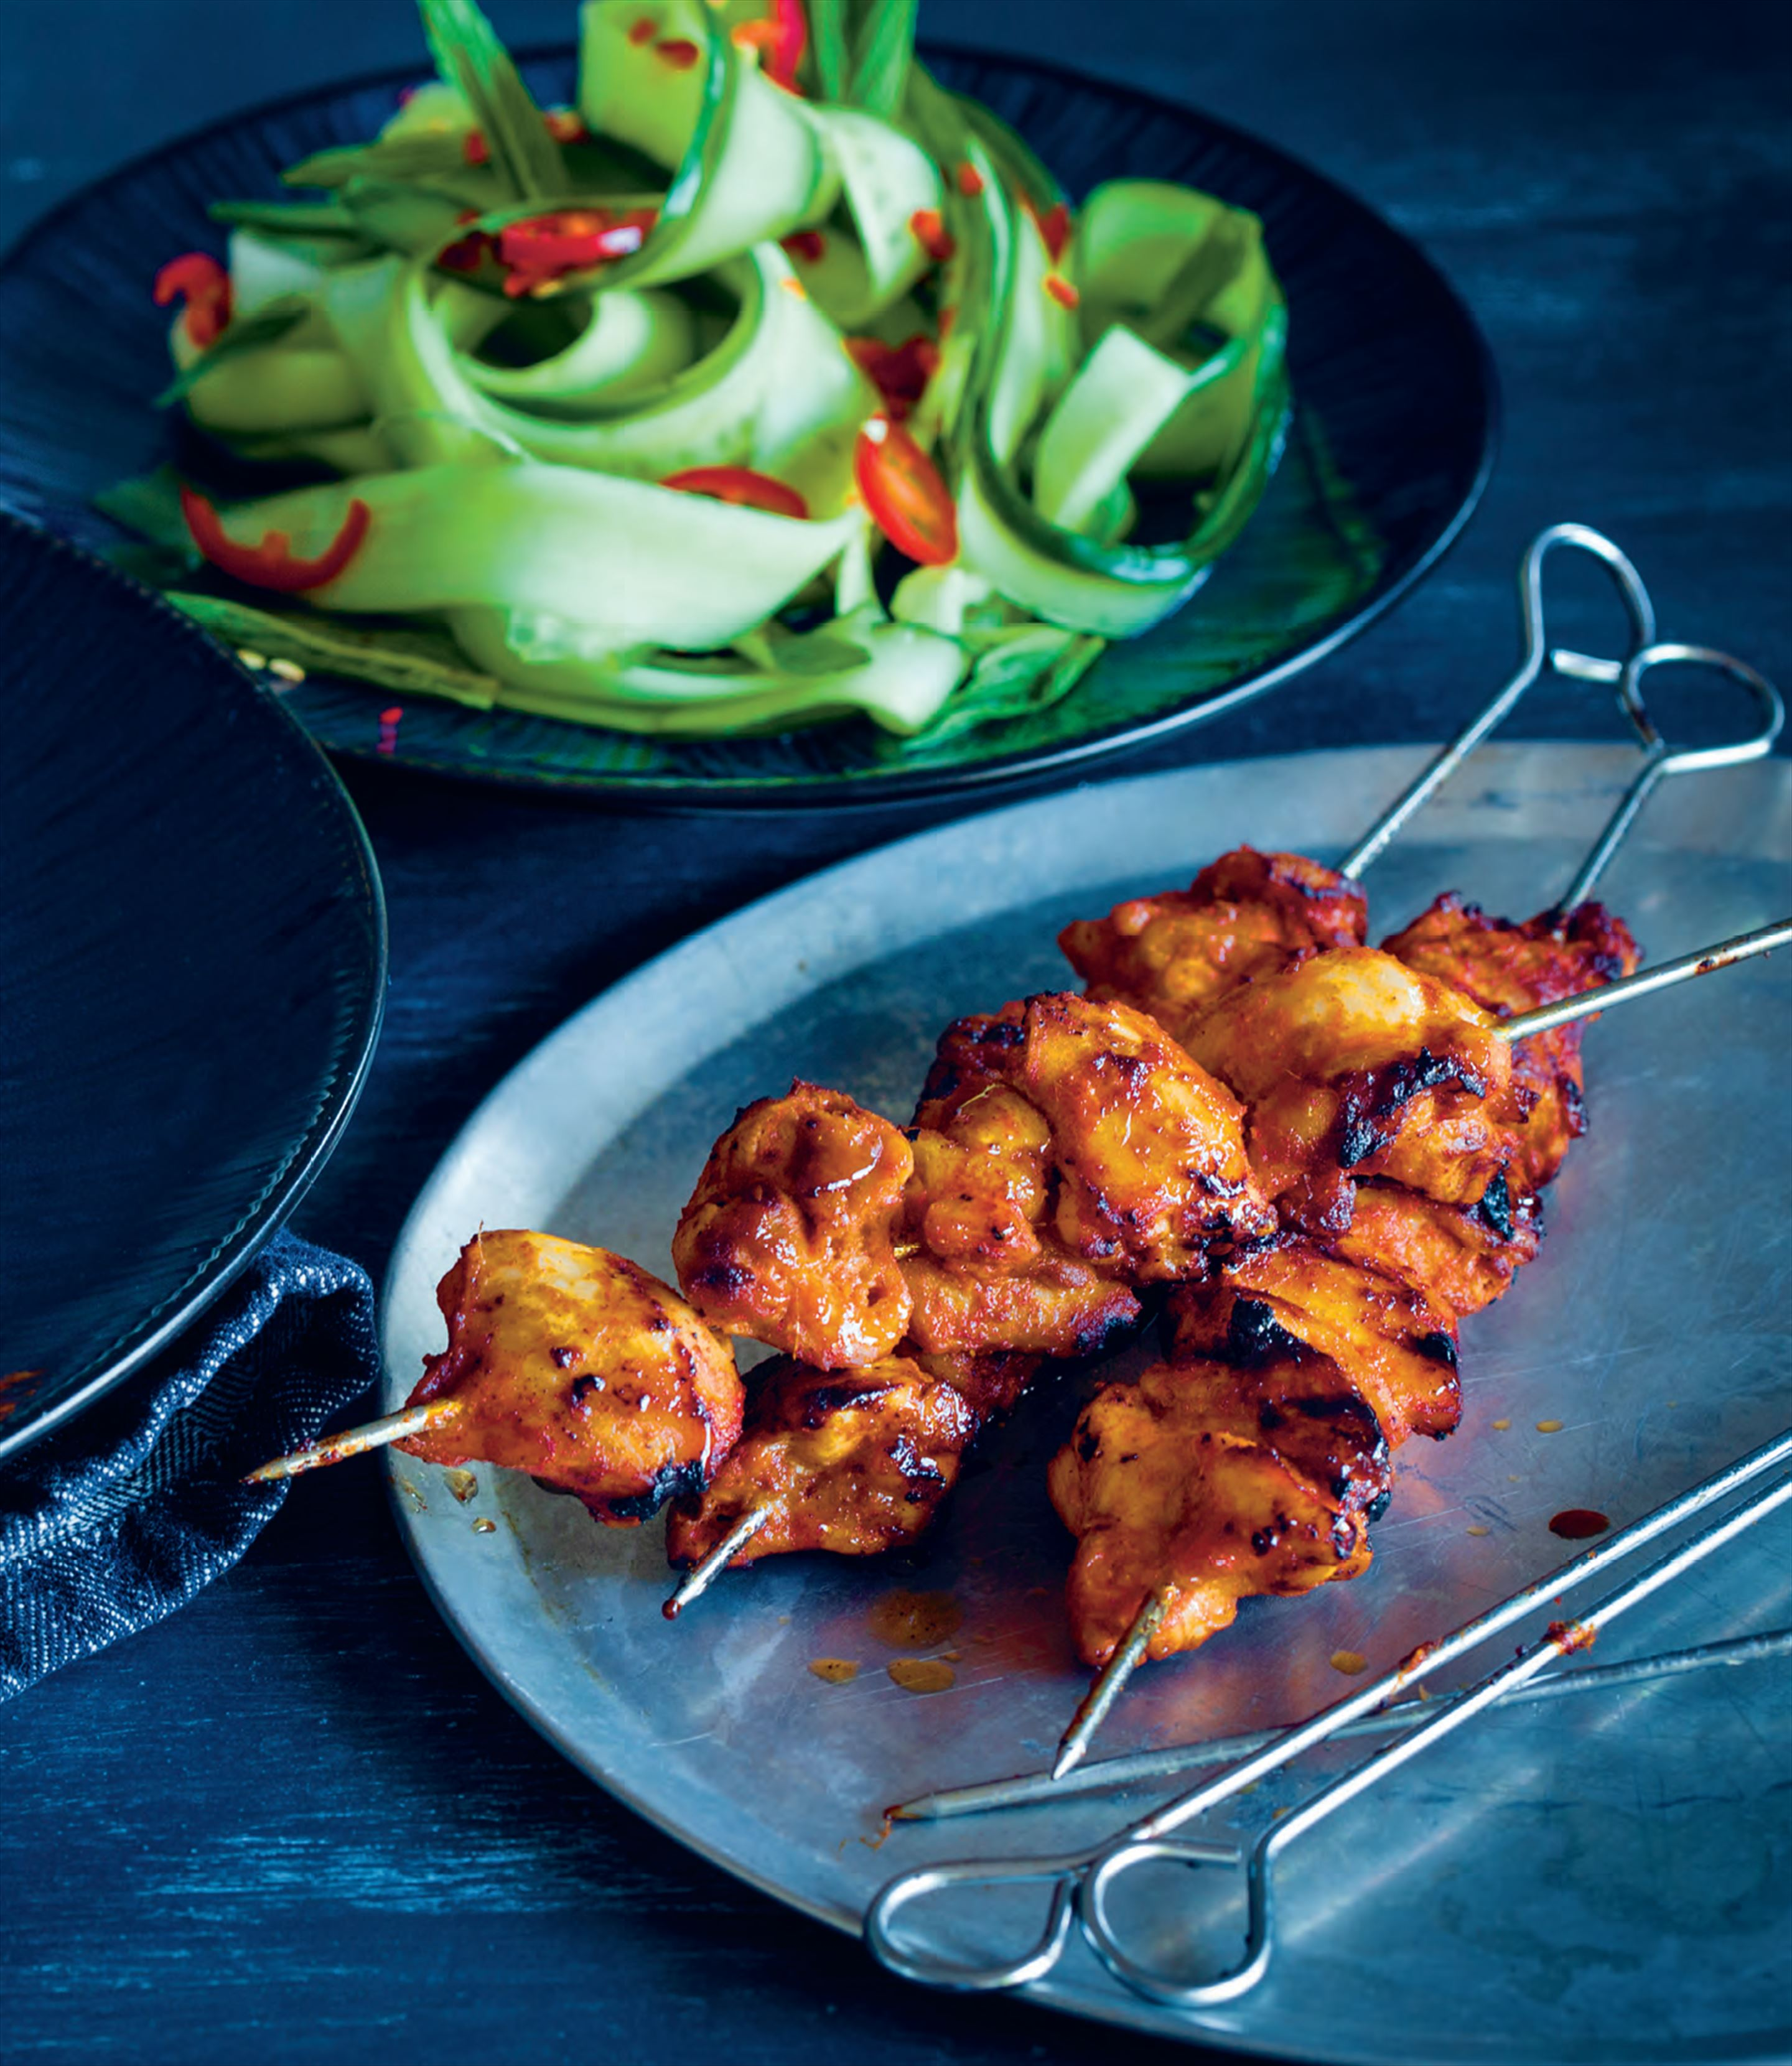 Barbecued butter chicken tikka